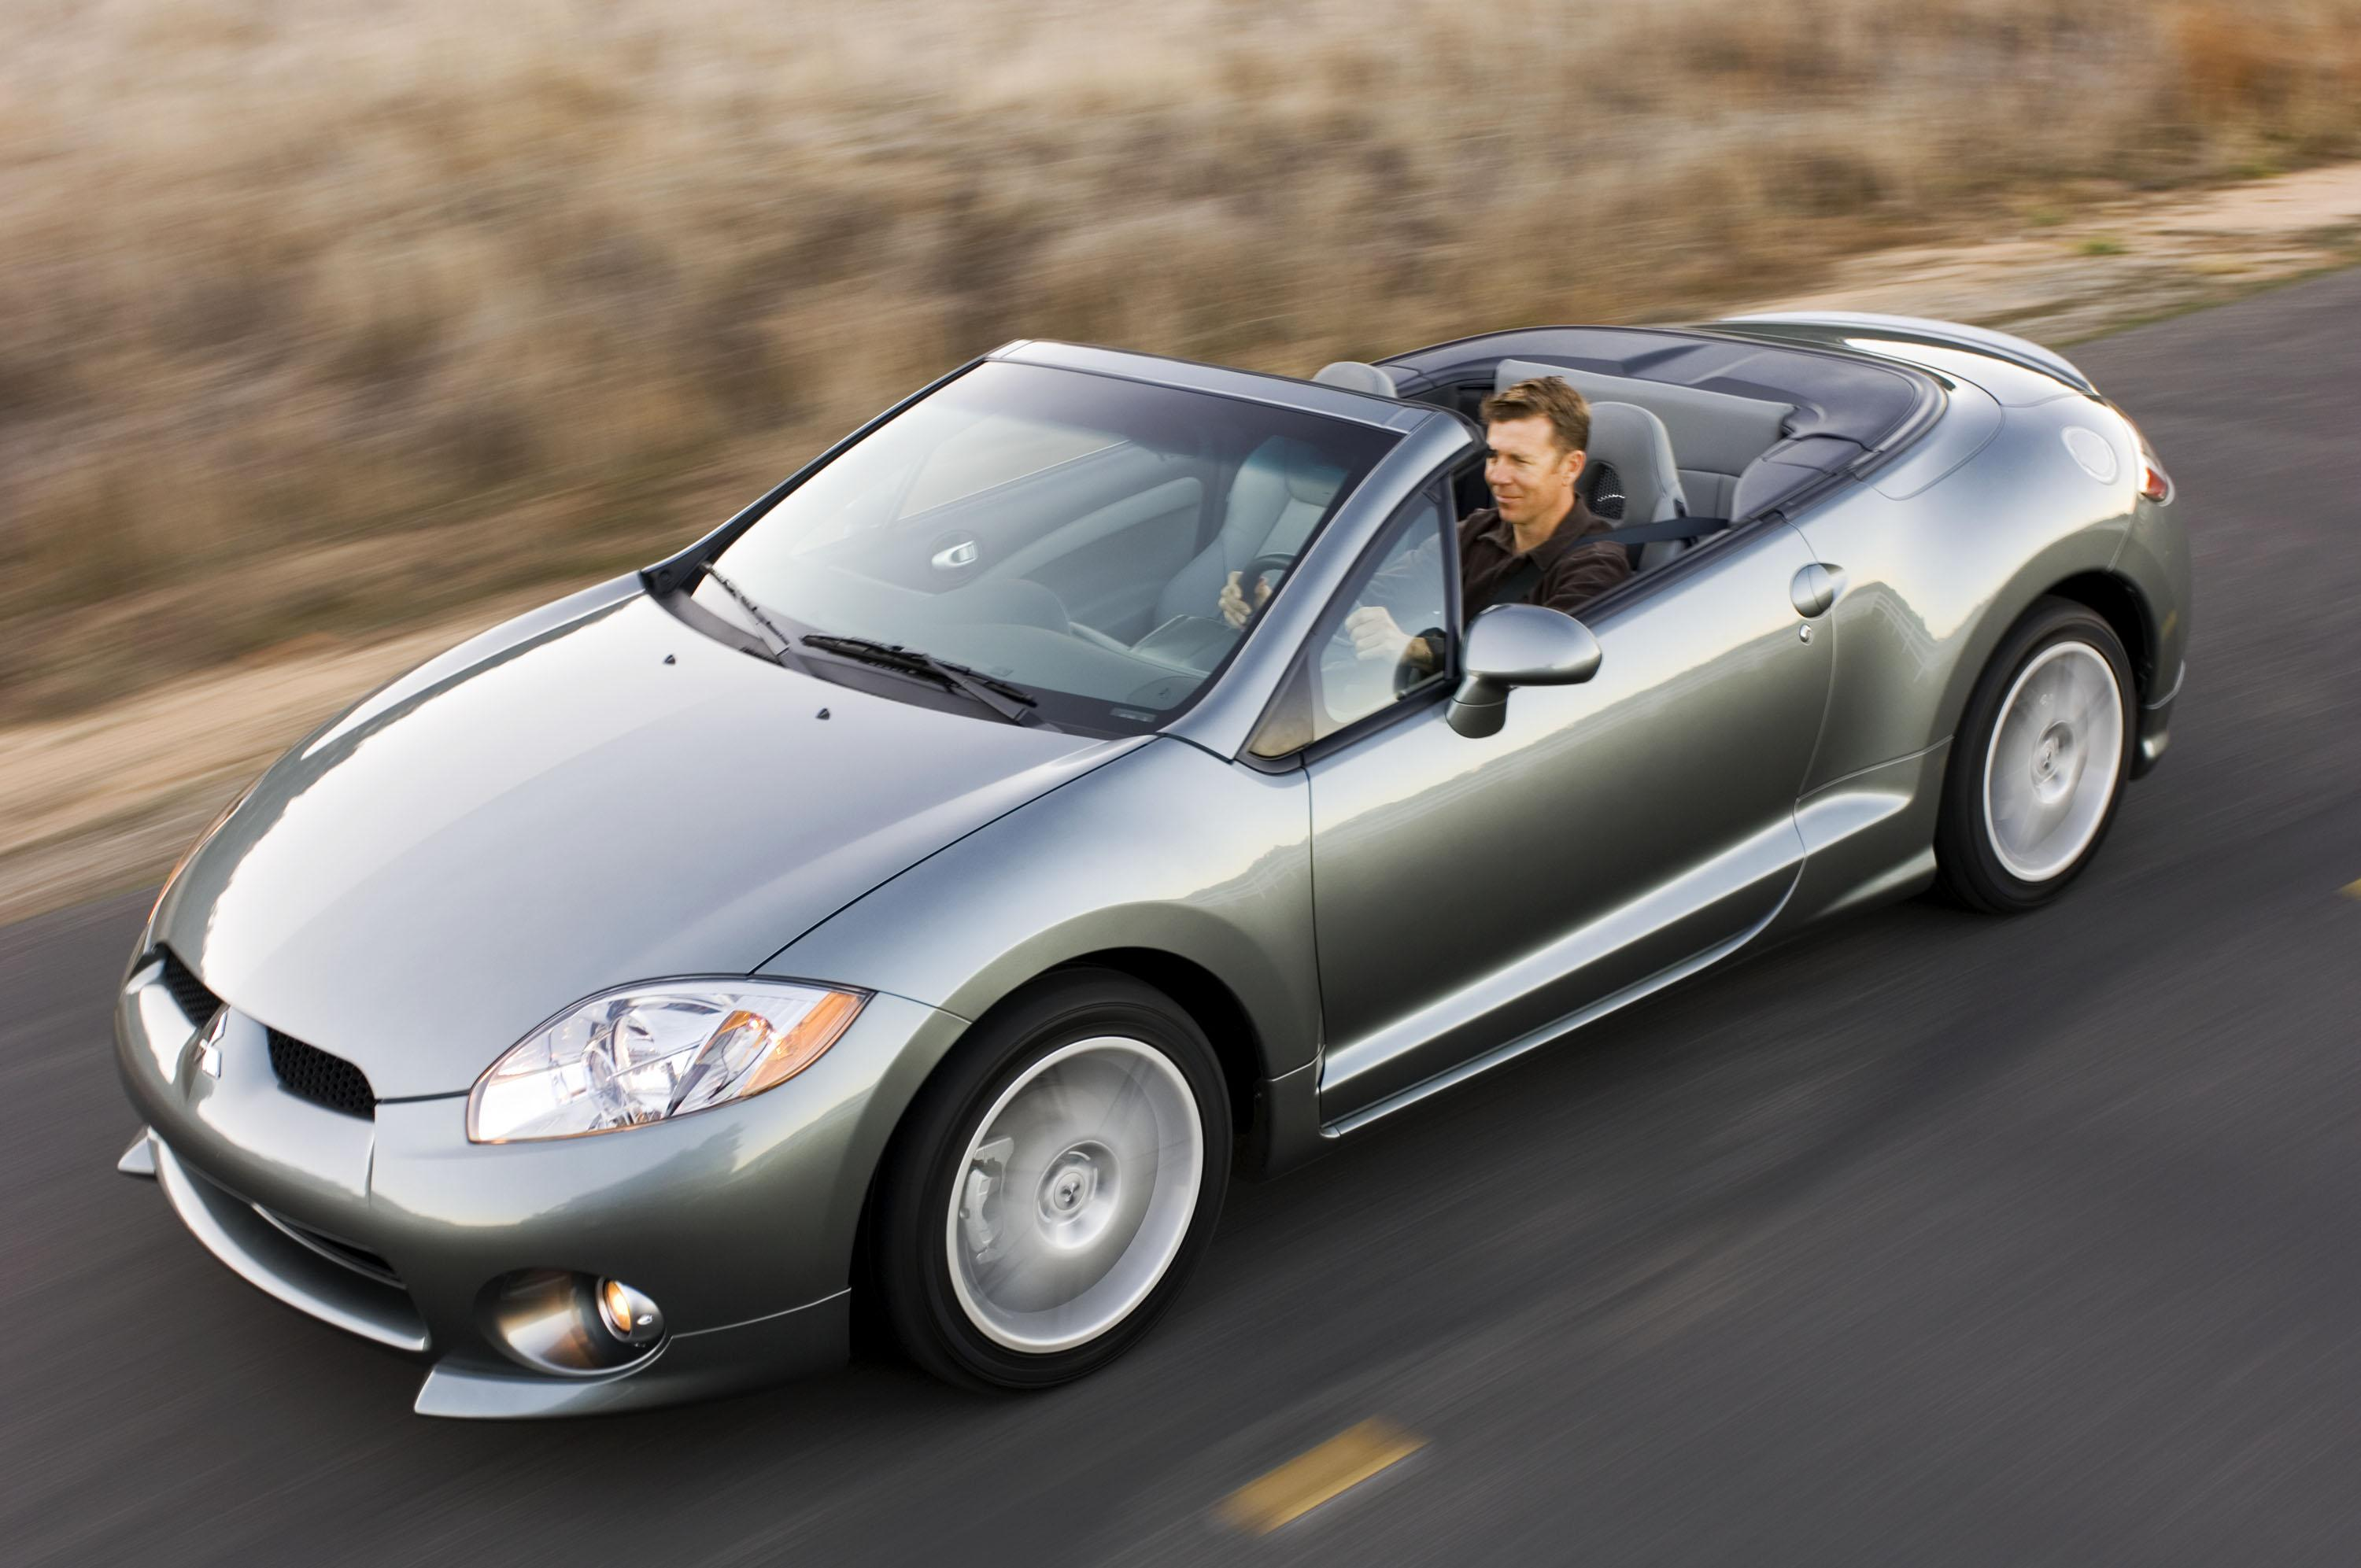 contact gs tx in convertible mitsubishi spyder veh houston eclipse